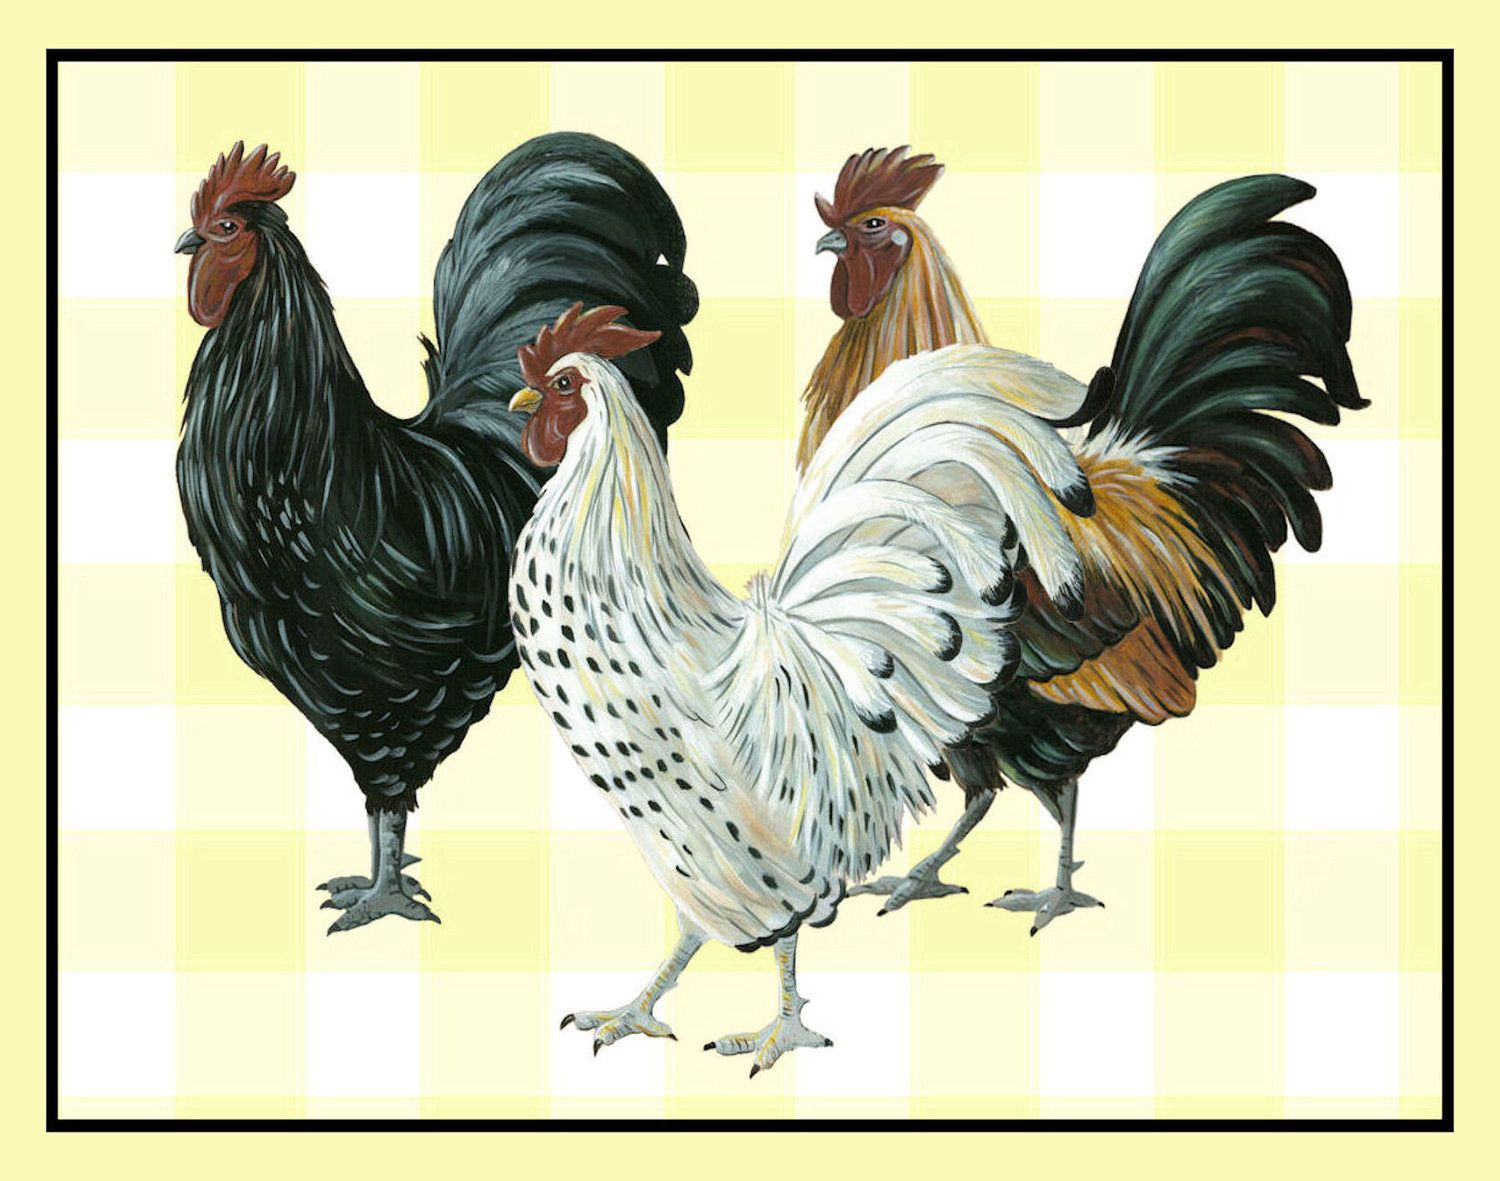 Roosters Out For A Stroll Yellow Check Background Kitchen Decor Rooster Art Country En 8x10 Print 15 00 Via Etsy